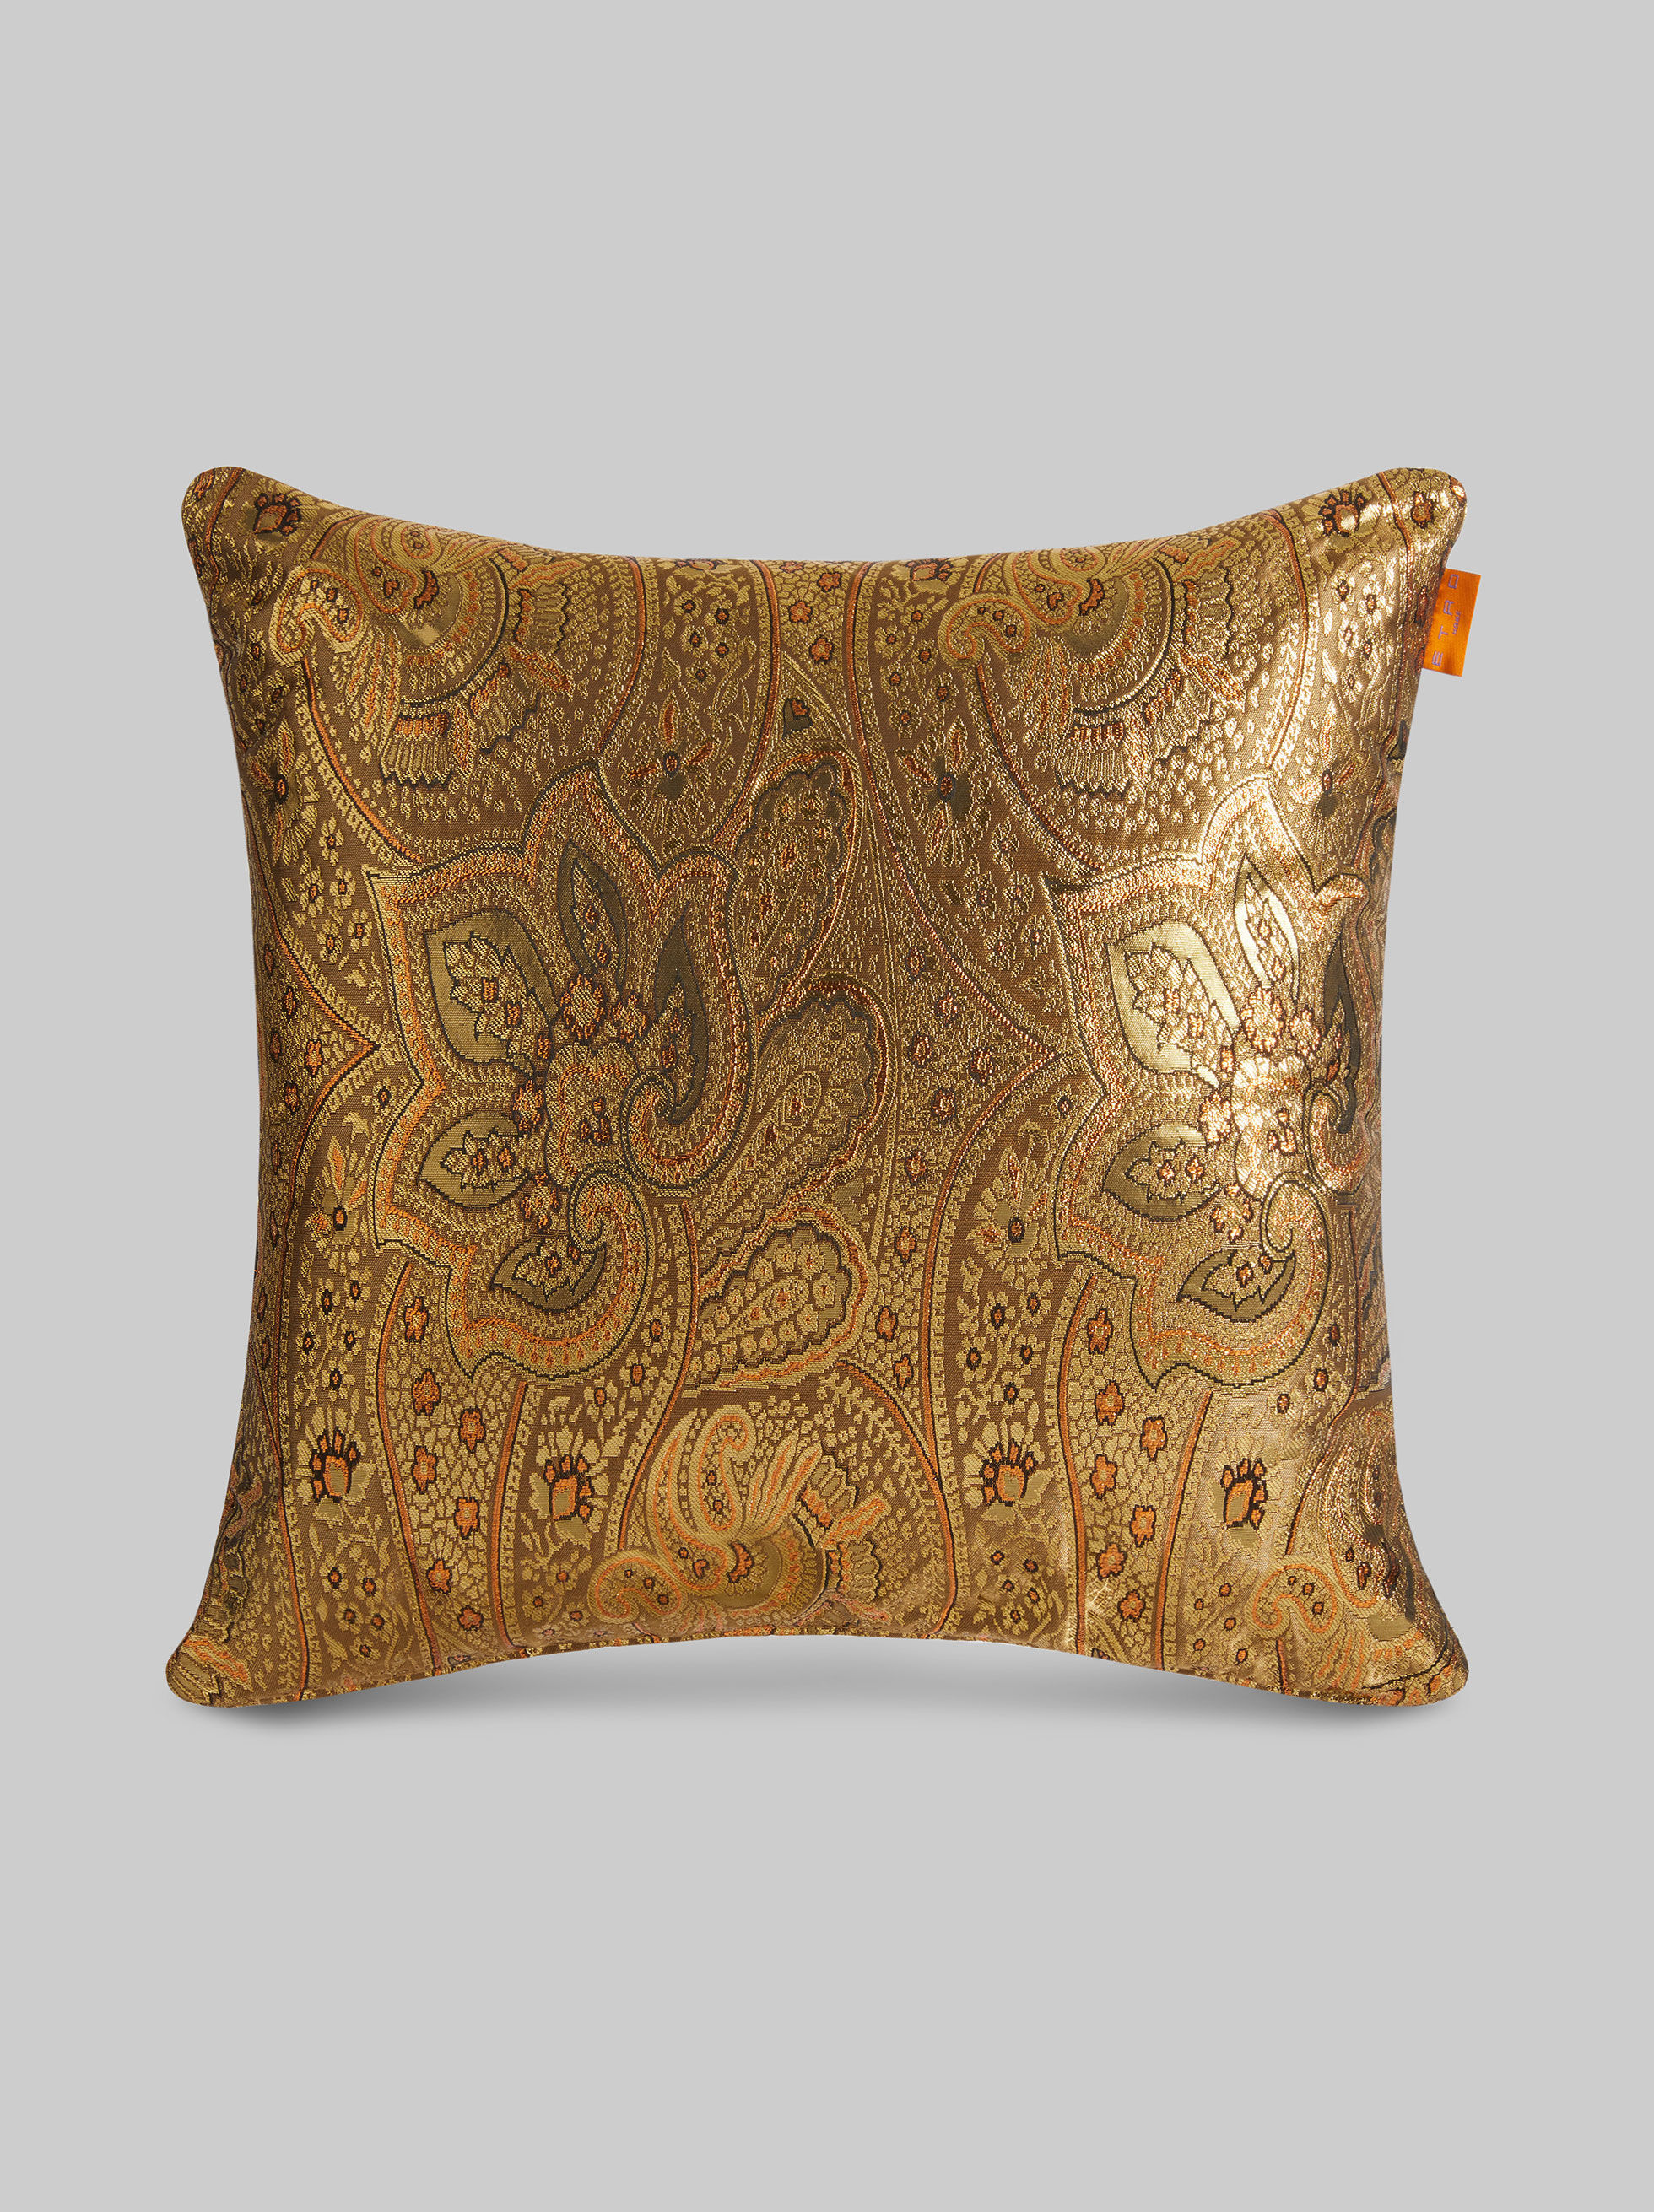 JACQUARD THROW PILLOW WITH LUREX EMBROIDERY